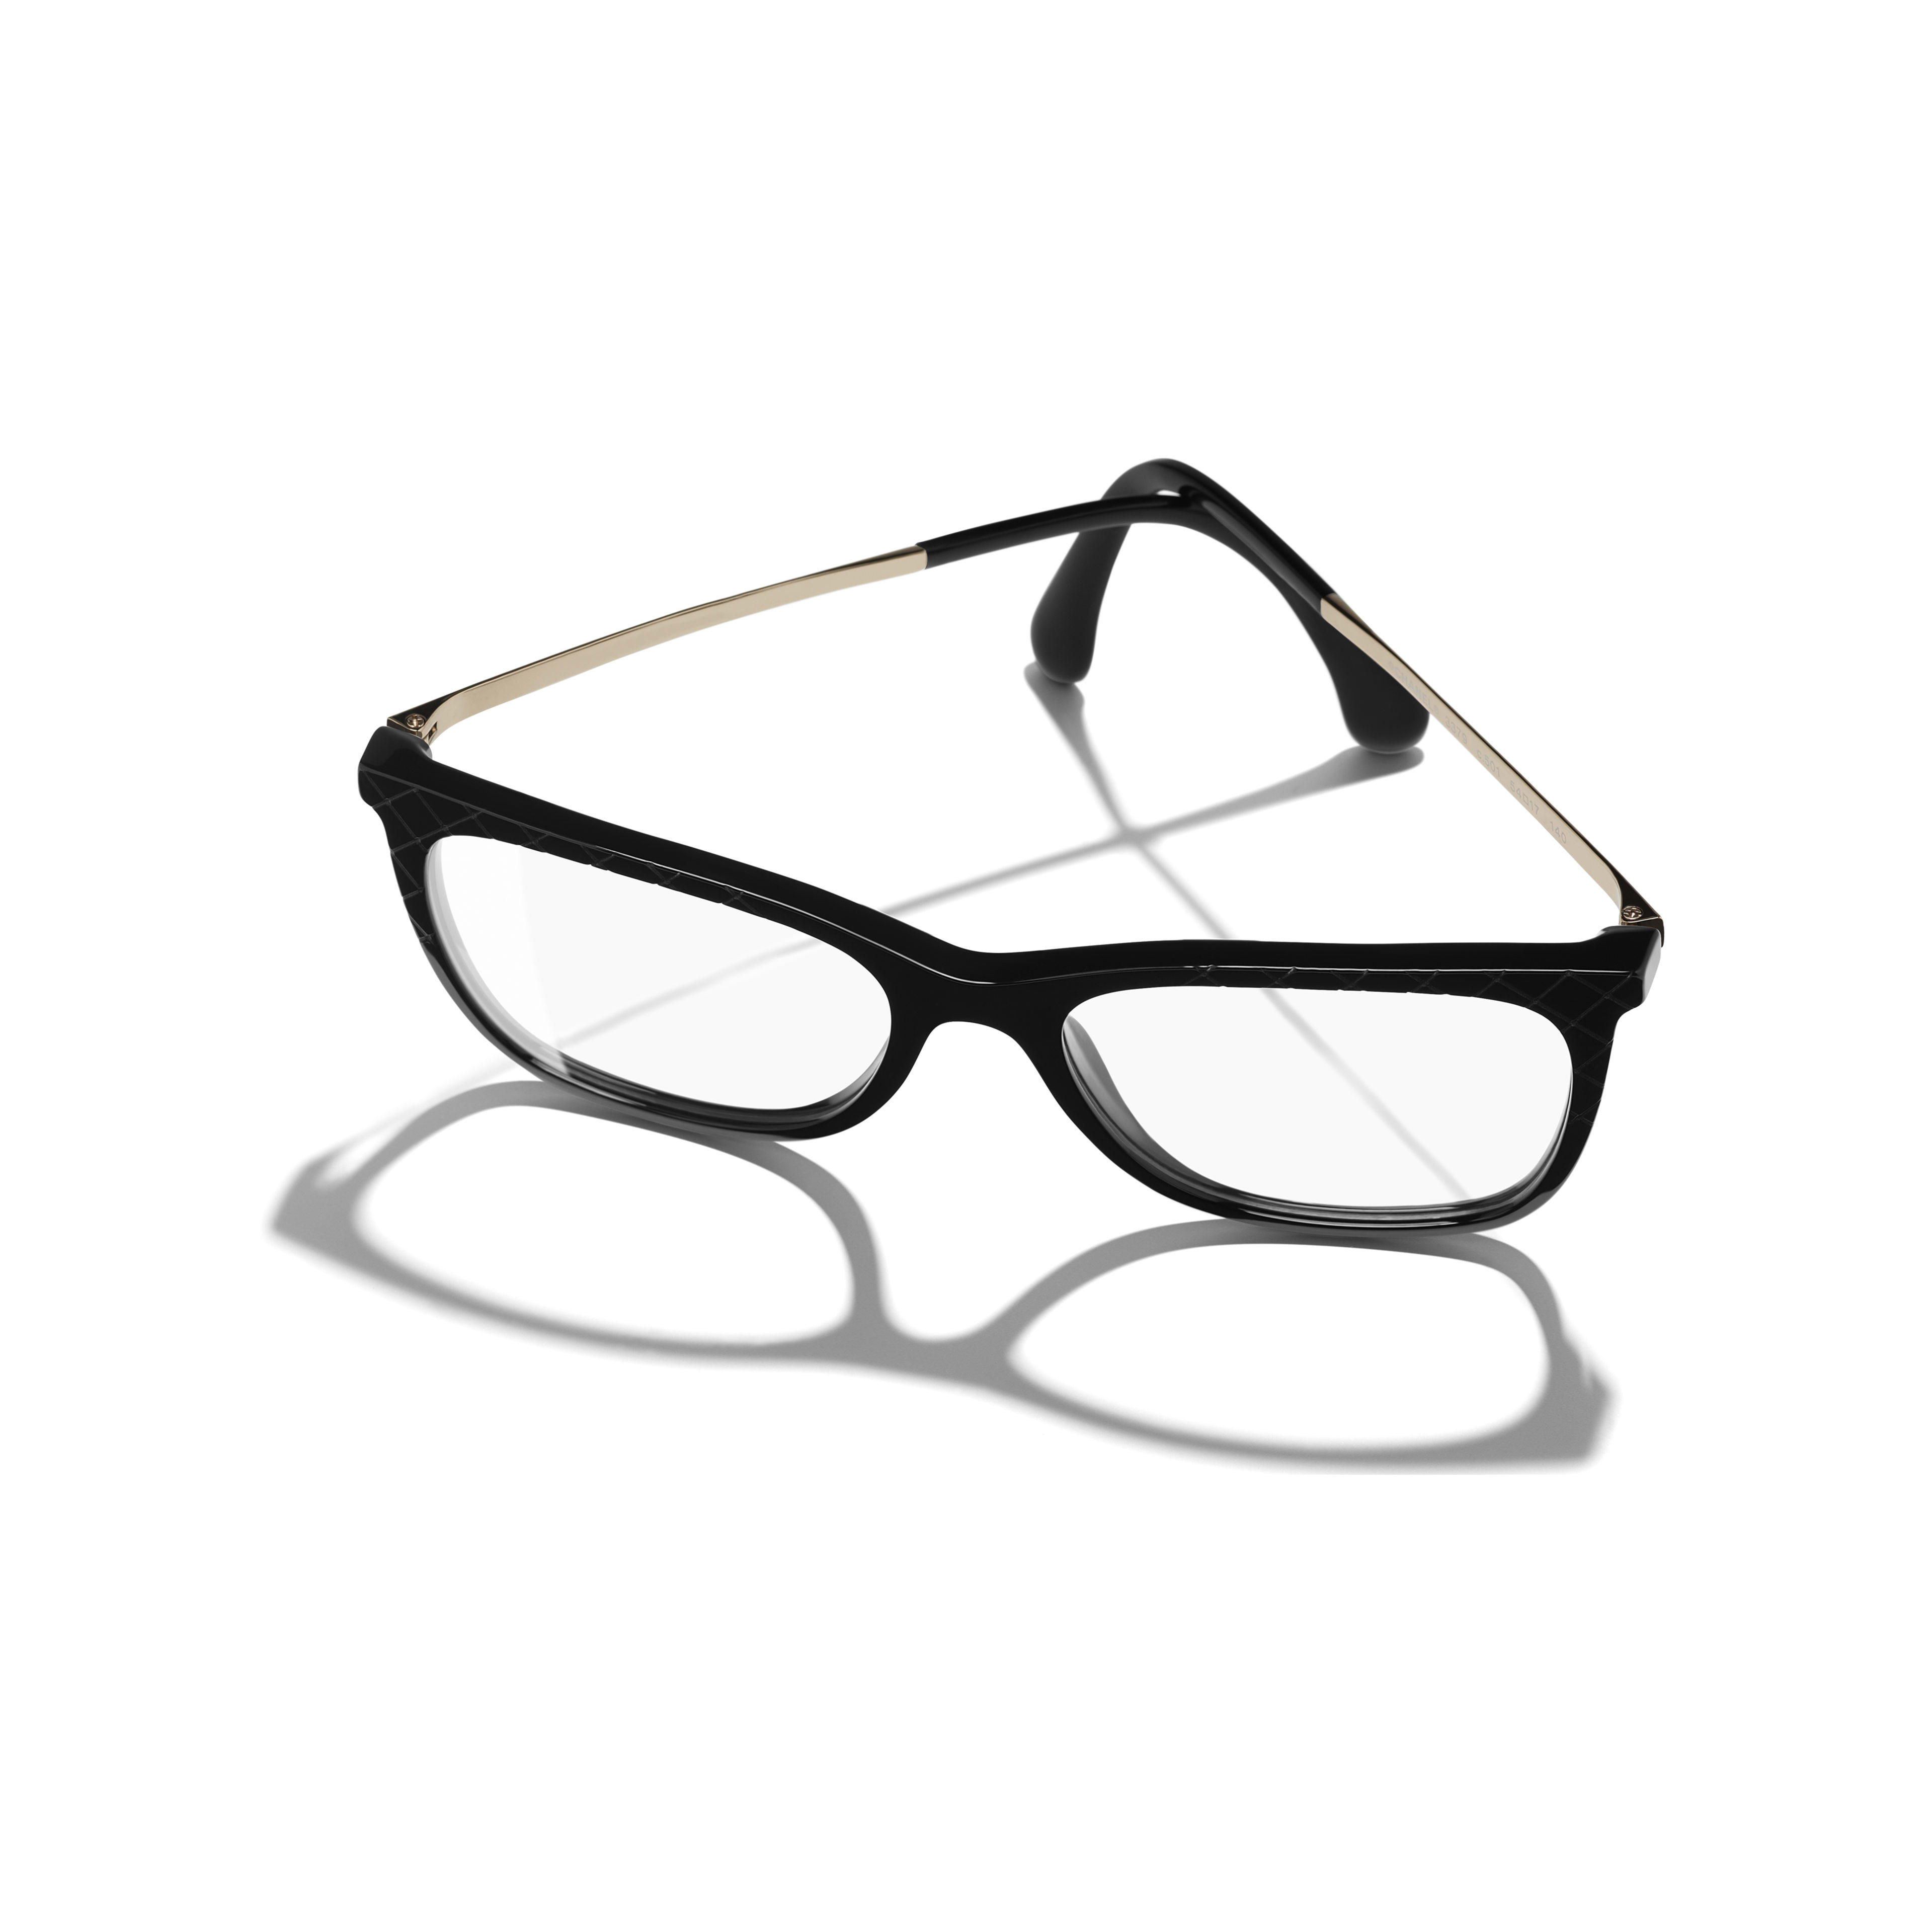 Rectangle Eyeglasses - Black - Acetate & Metal - Extra view - see full sized version